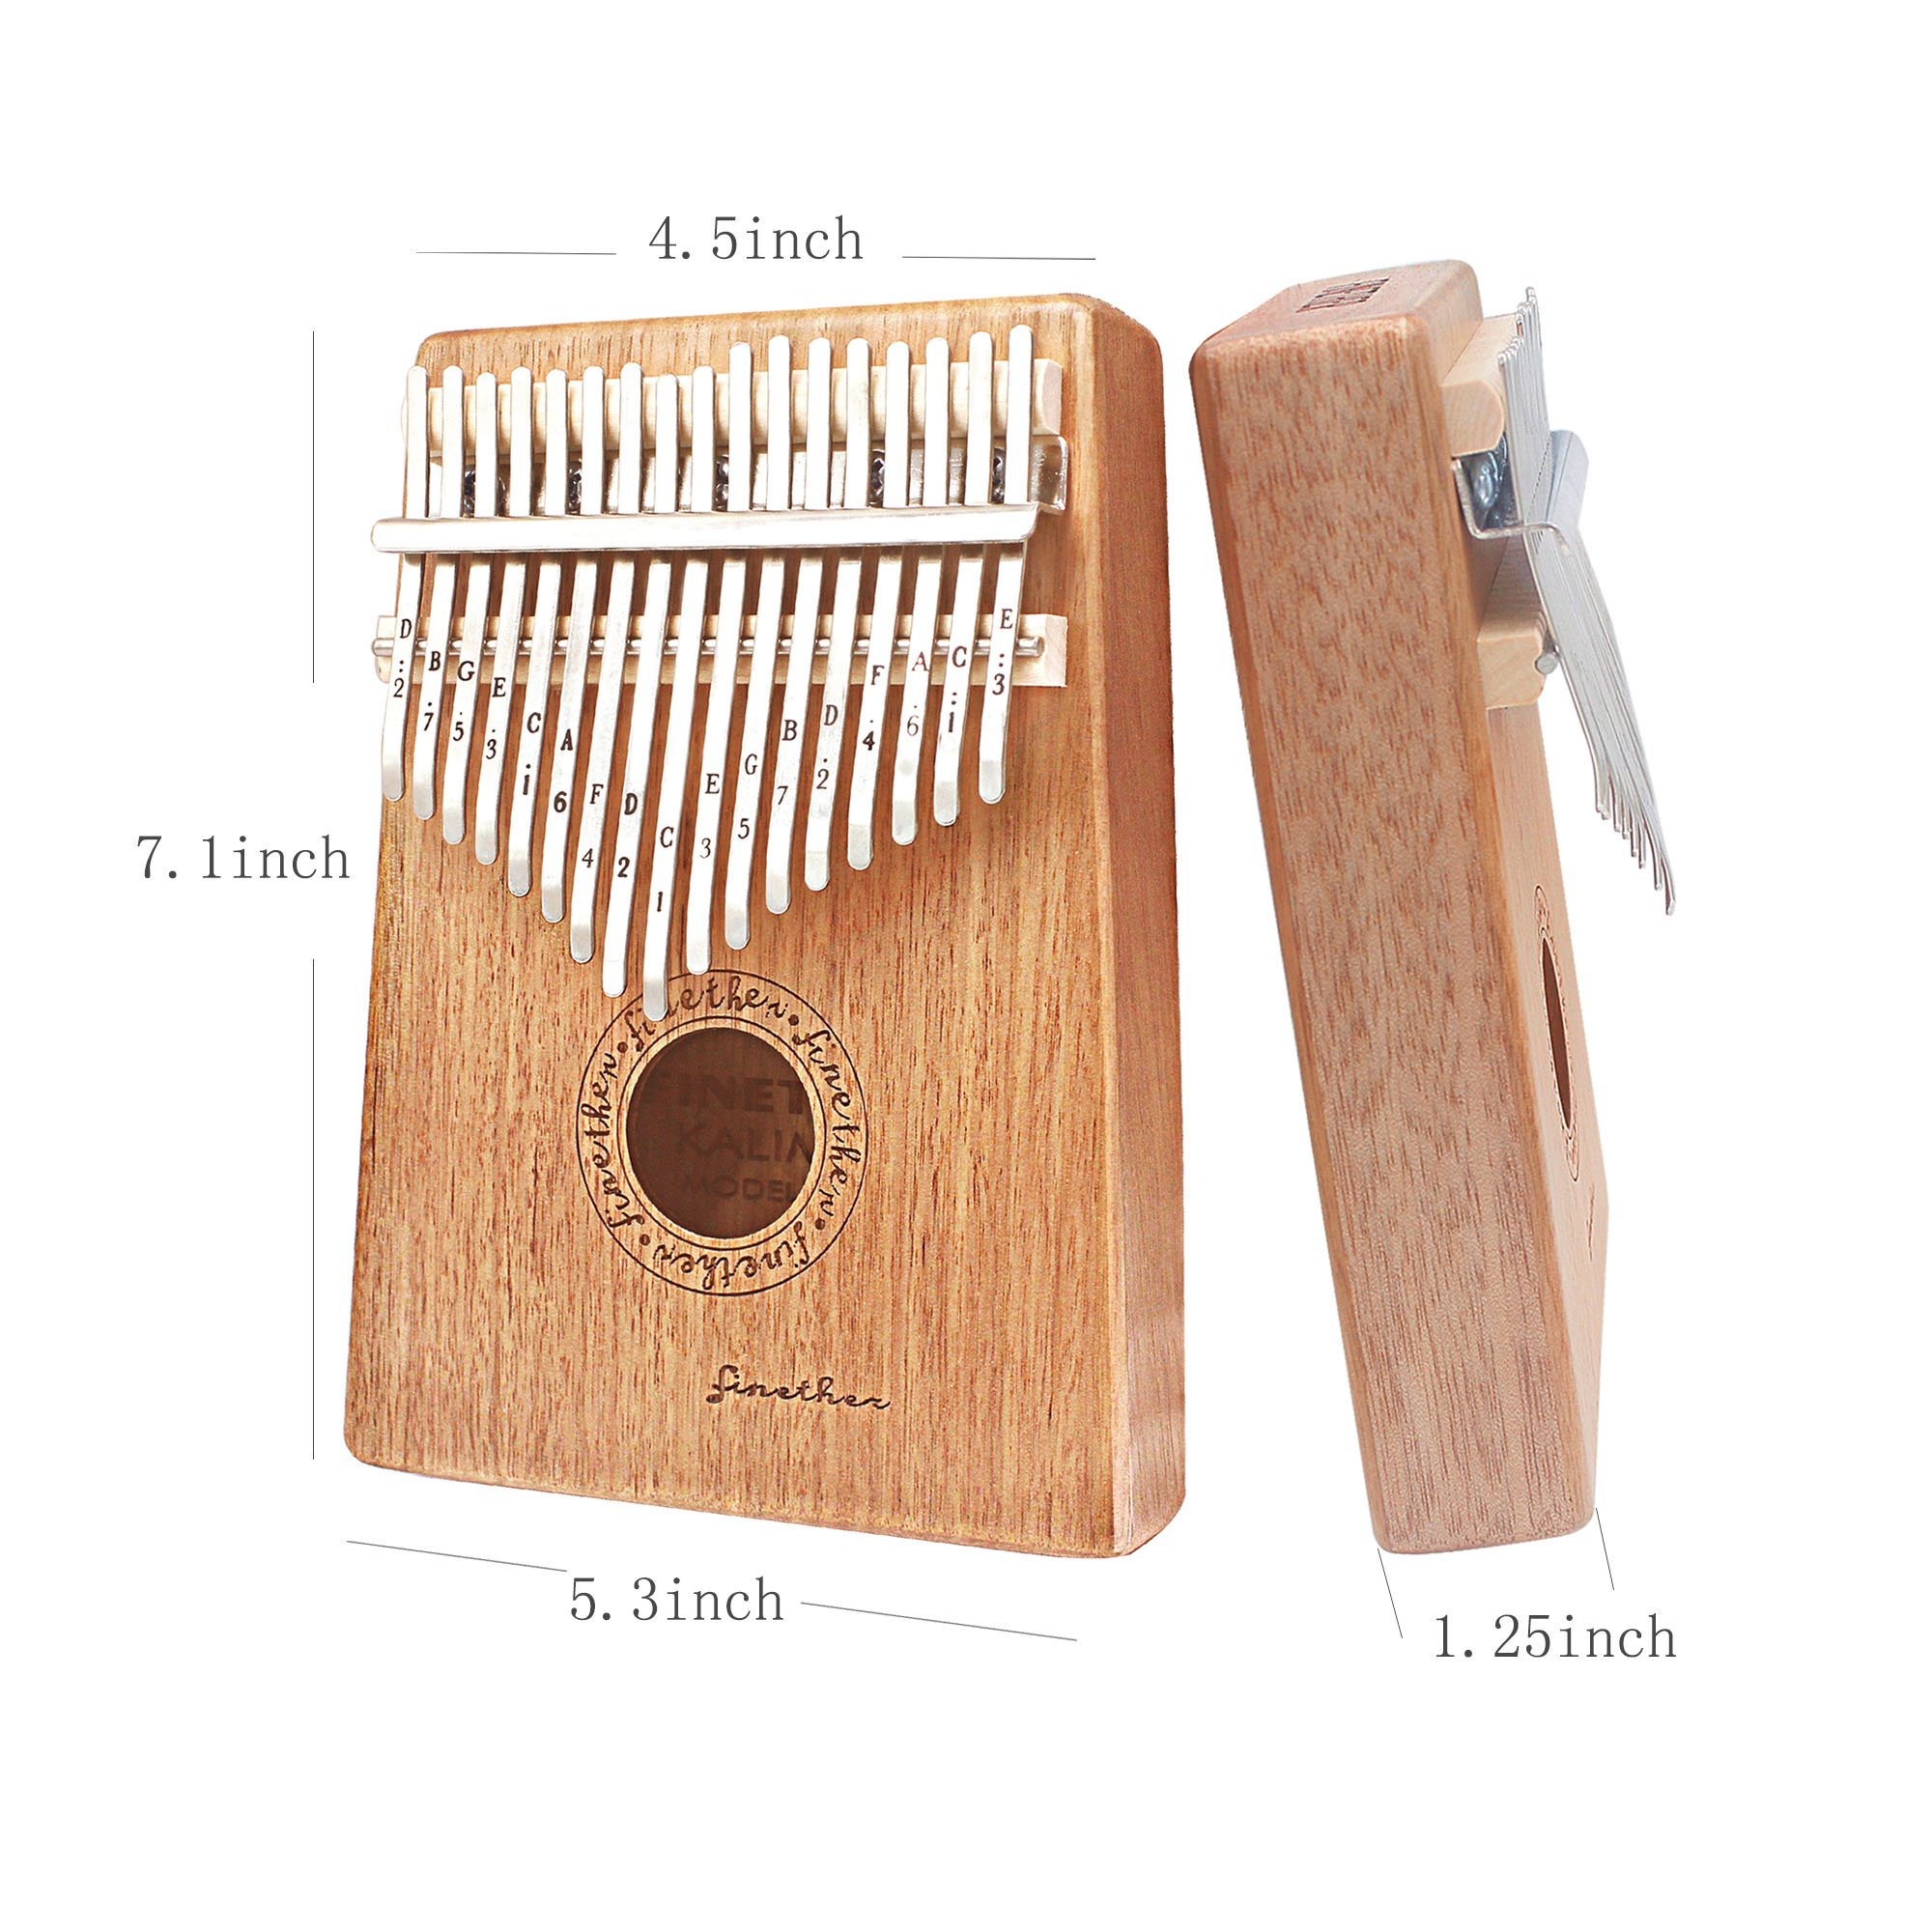 17 Keys Mahogany Kalimba Thumb Piano Wood Mbira Sanza Finger Percussion Pocket Keyboard w/Calibrating Tune Hammer for Beginners and Children (Mahogany) by AHongem (Image #2)